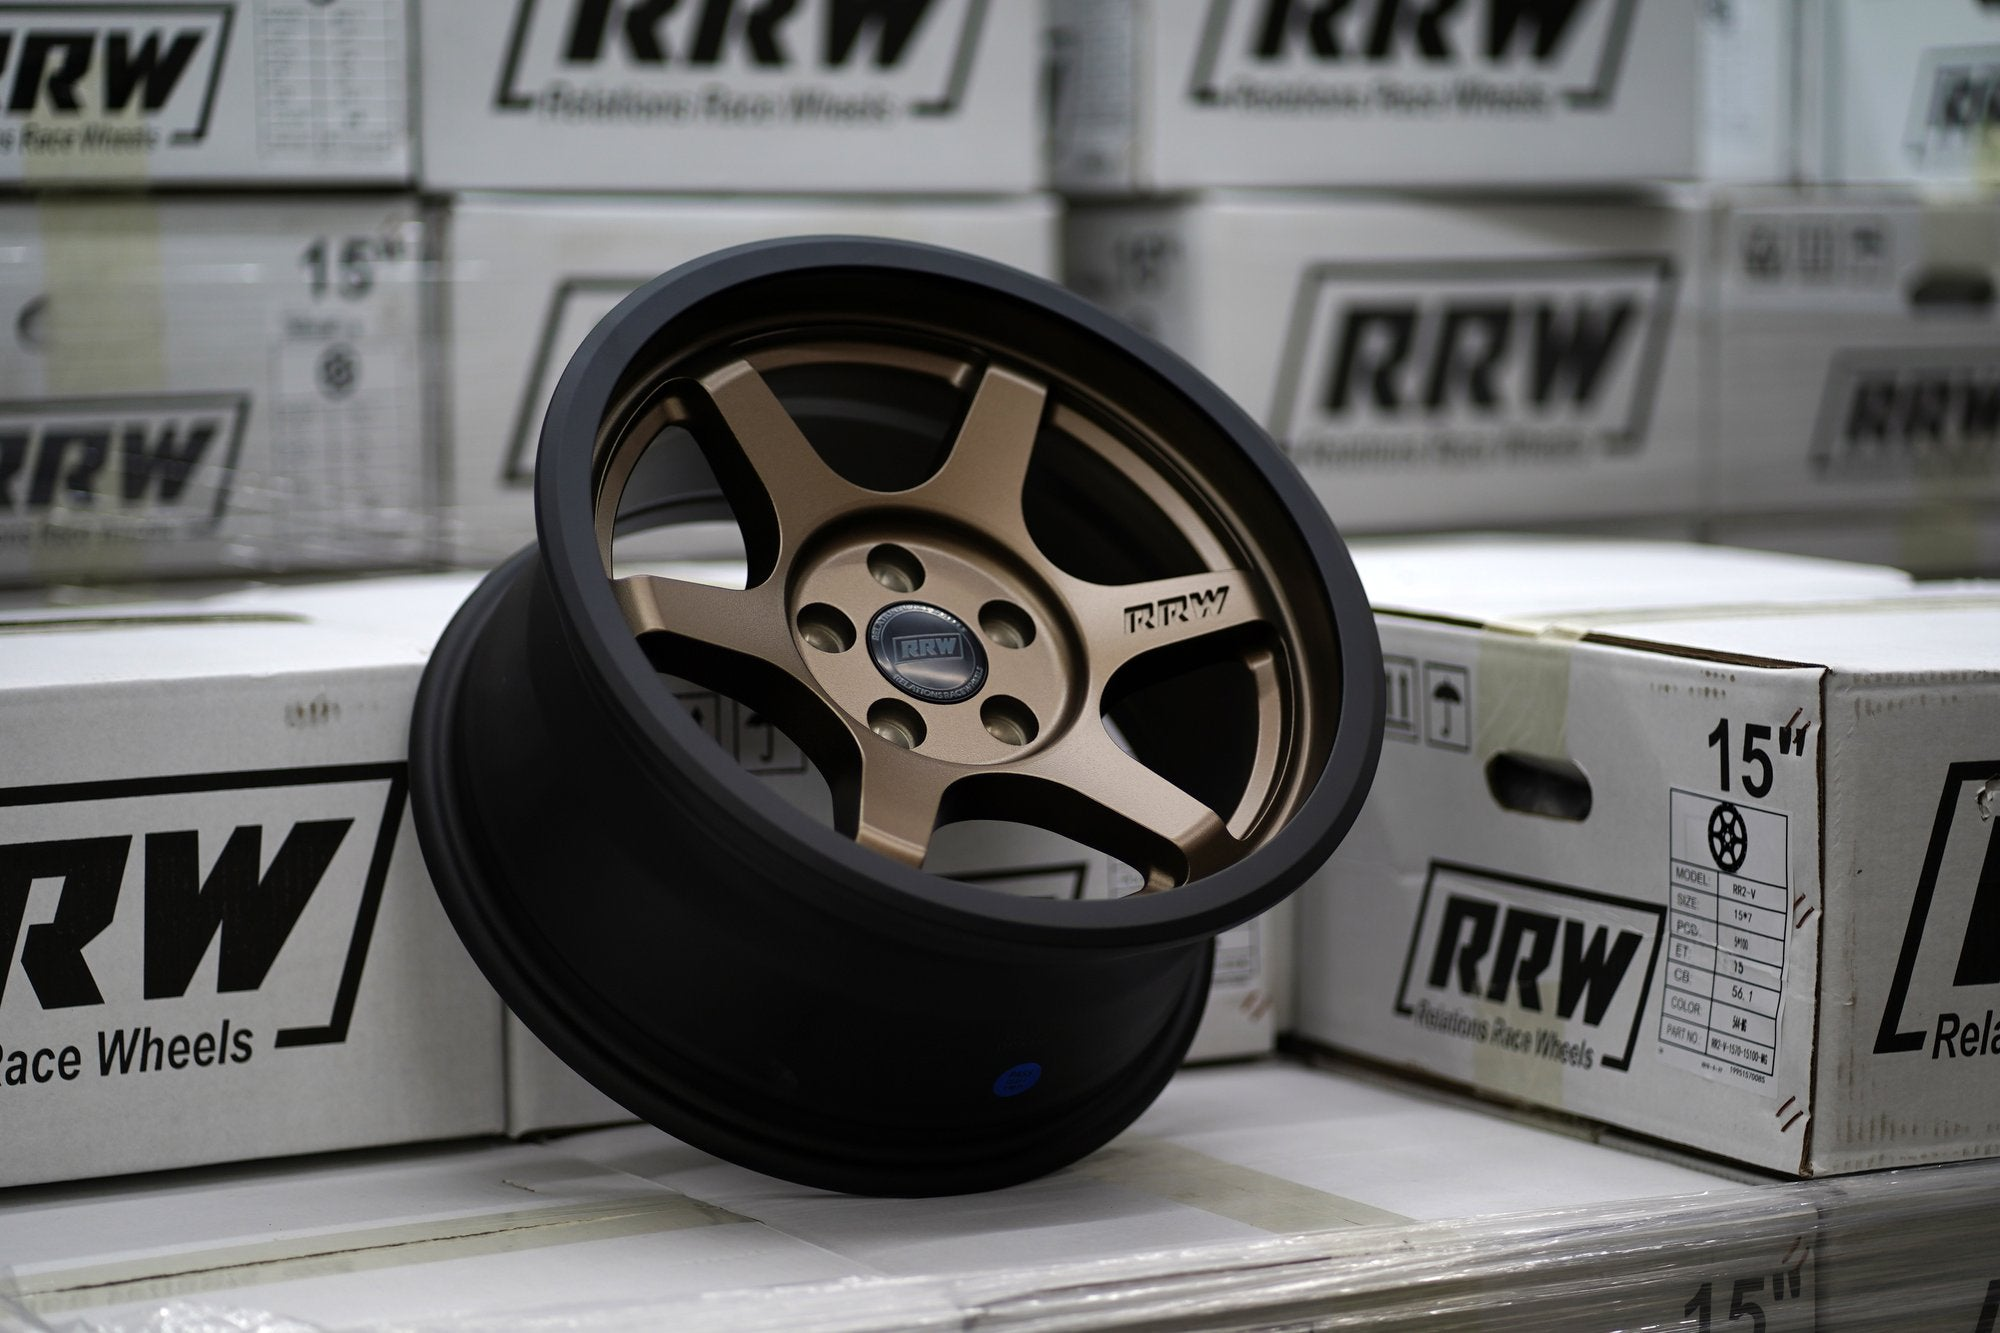 Aftermarket Wheels: Gravity Cast vs Monoblock Forged? Which is right for me?